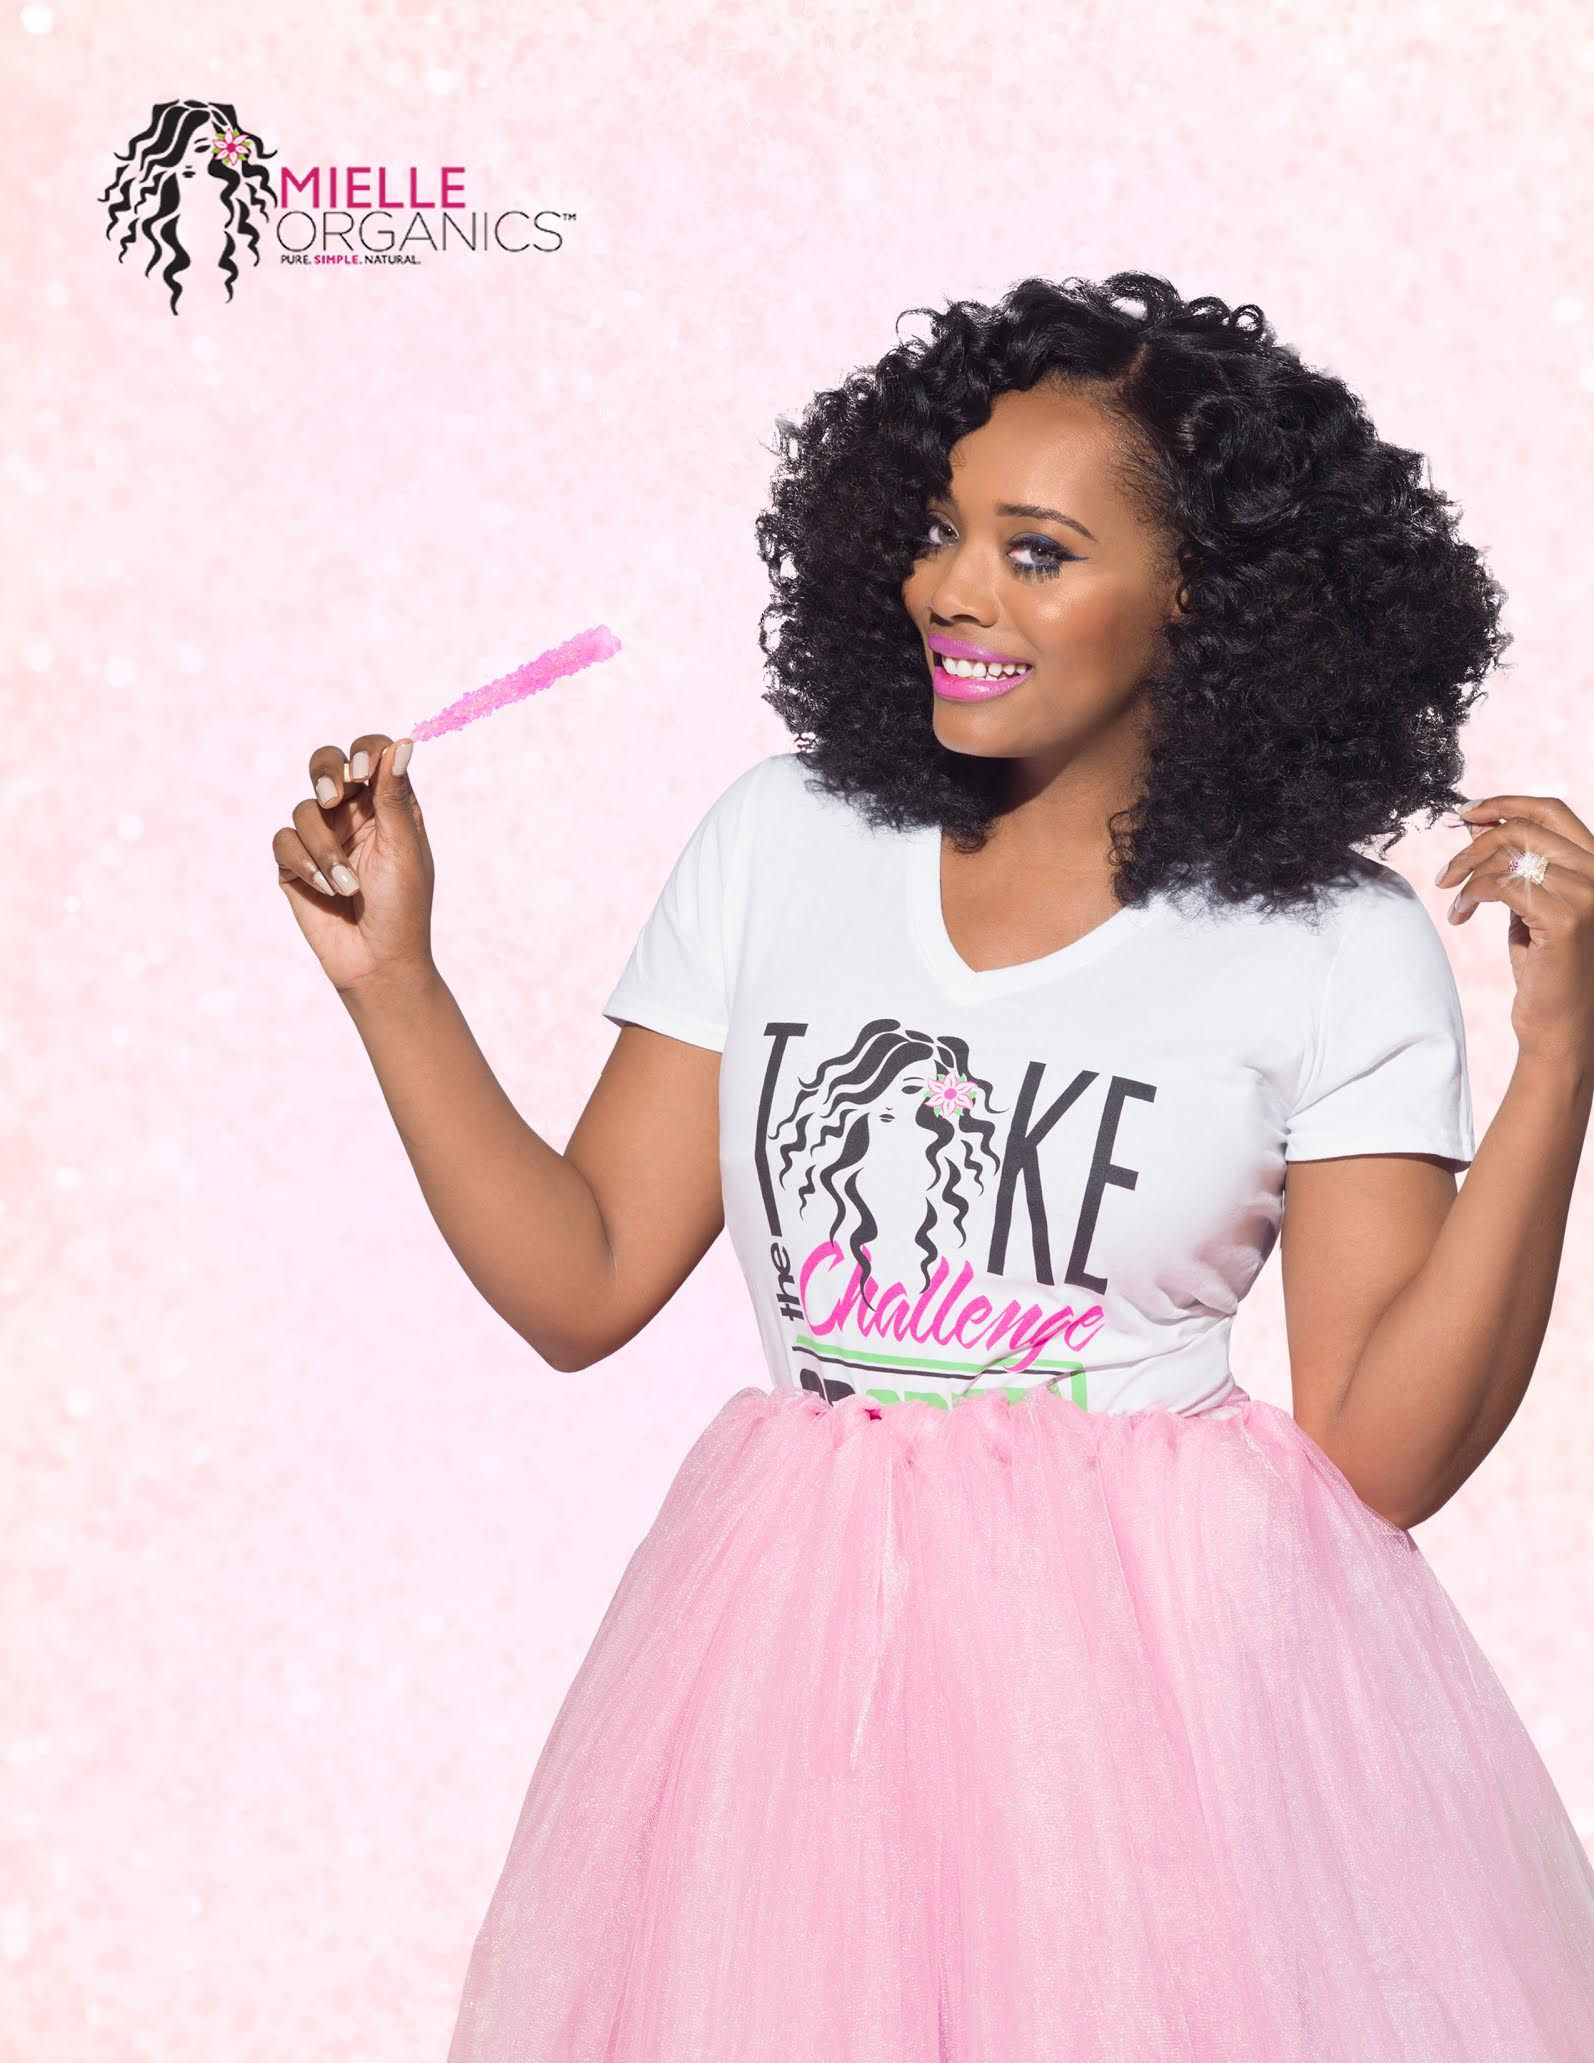 Vh1's Yandy Smith Signs on as Mielle Organics' First